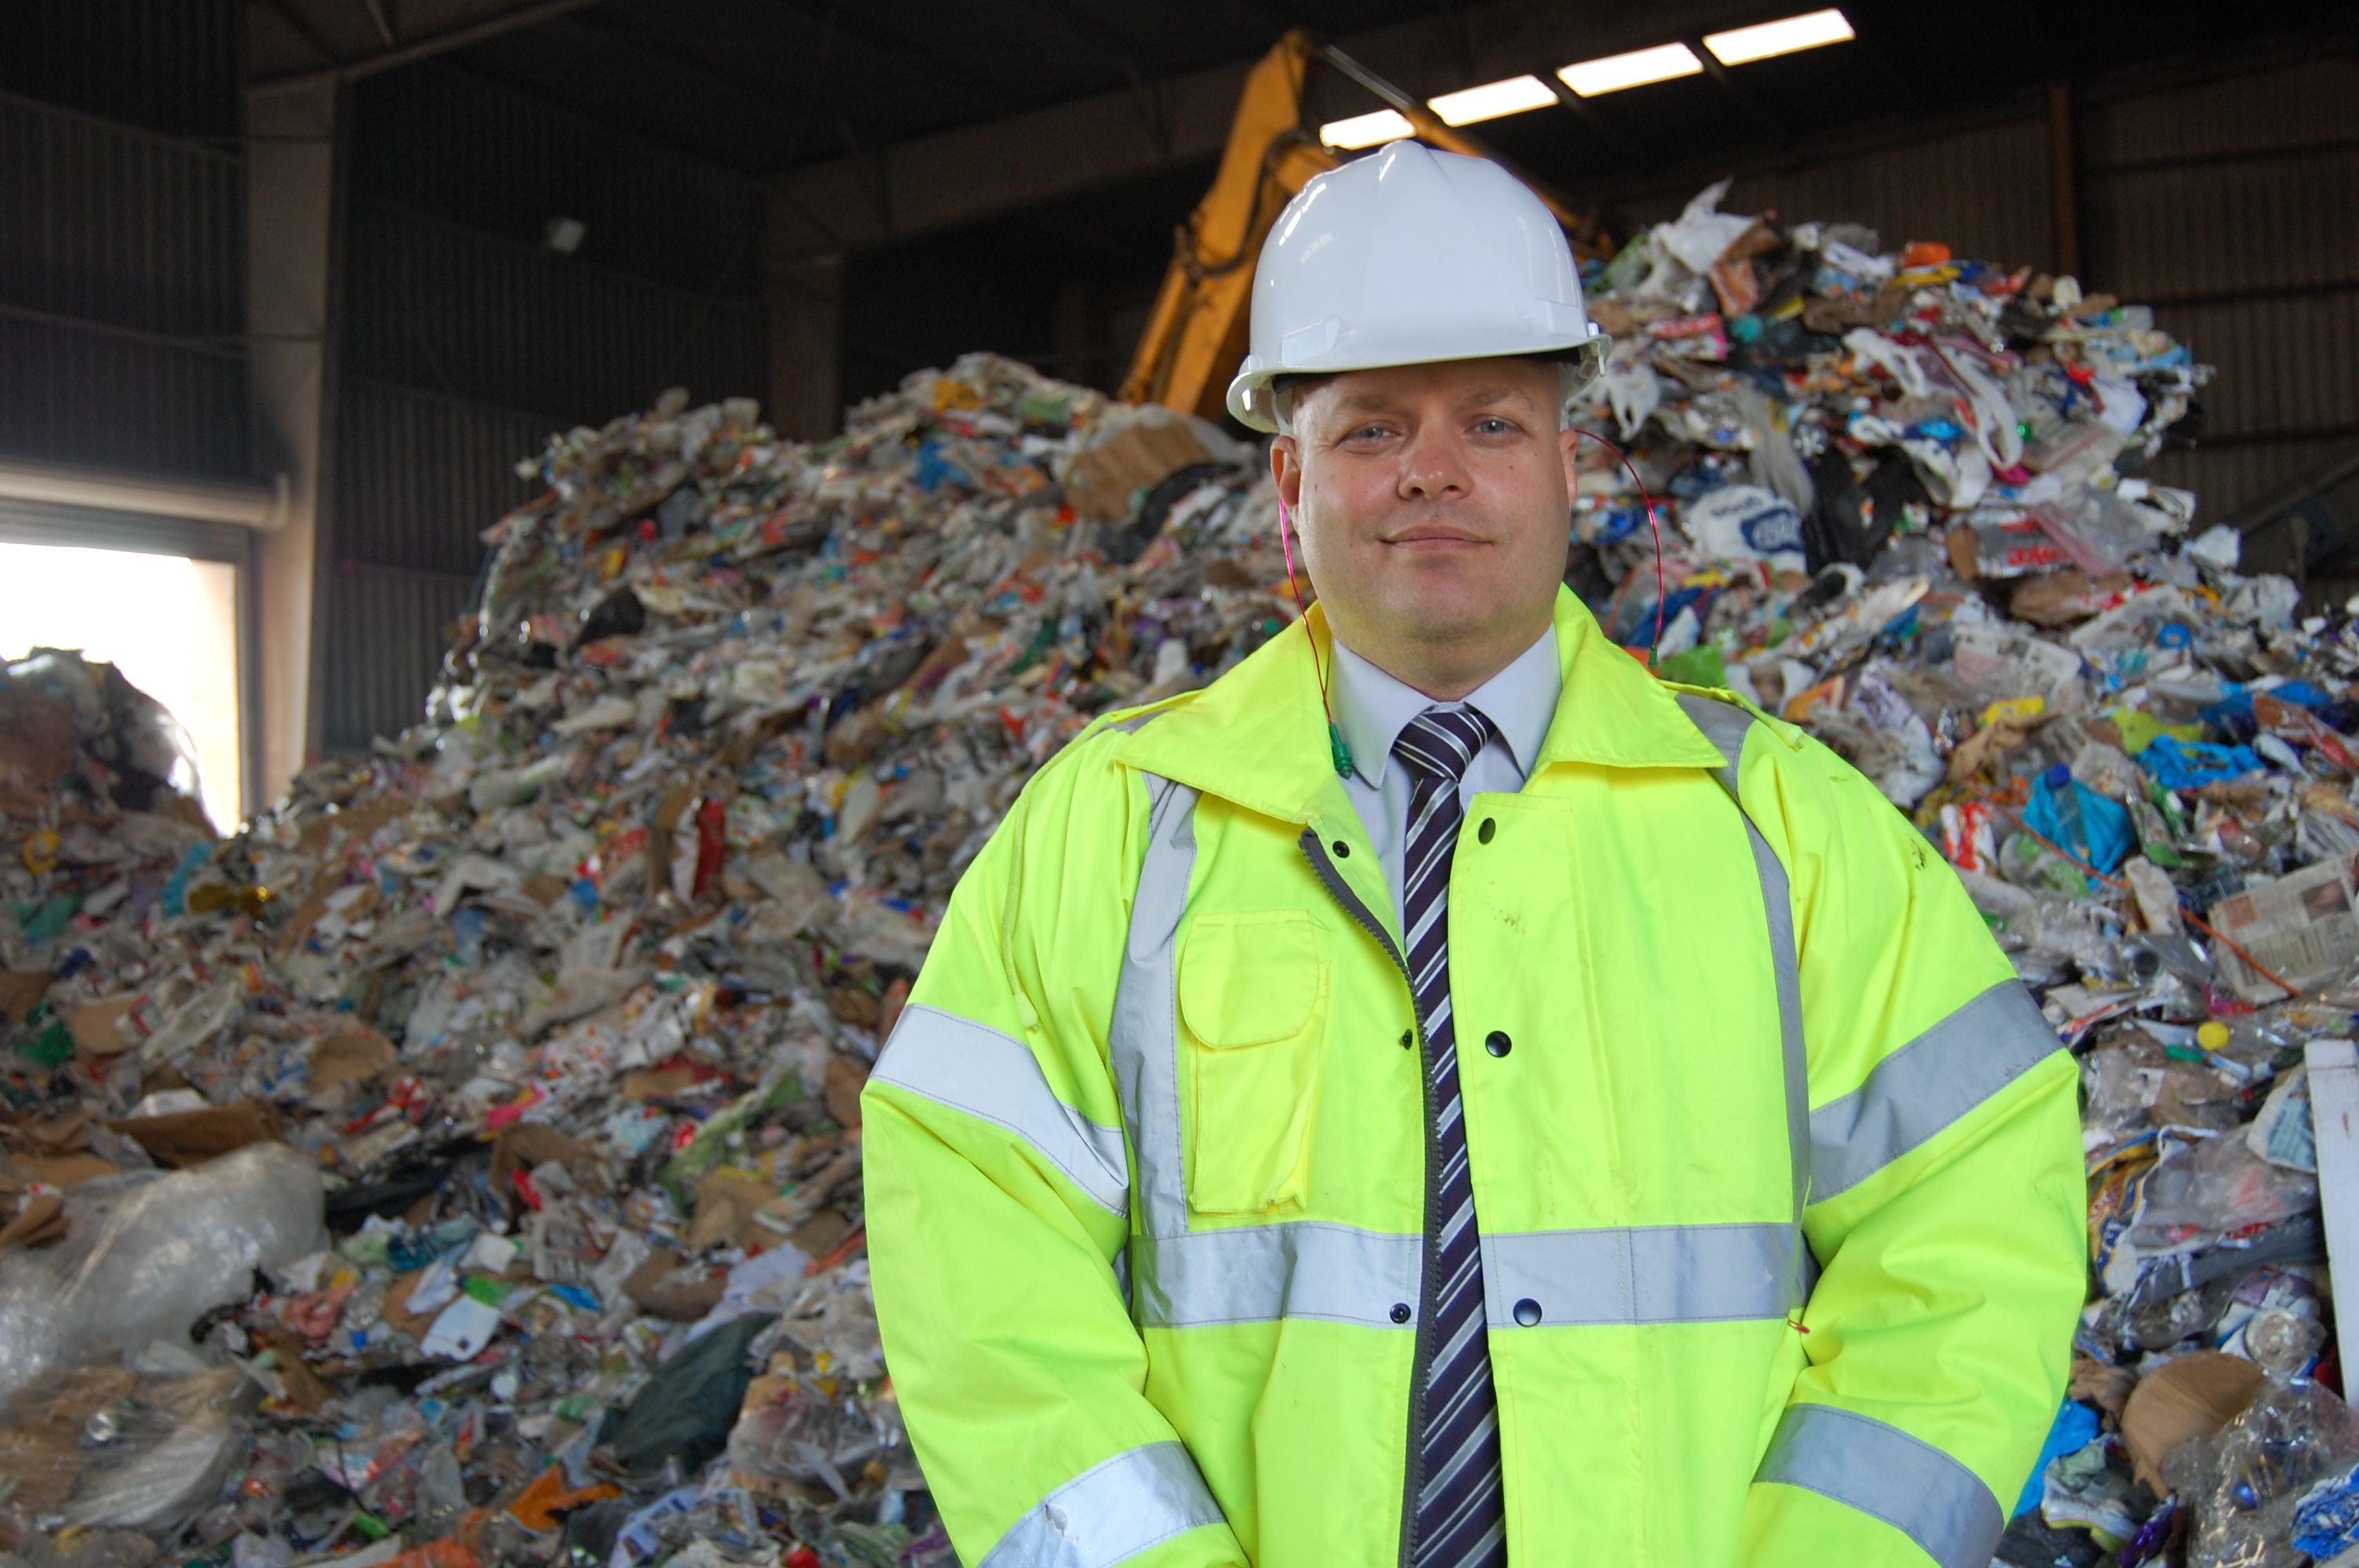 Businesses urged to go green this Recycle Week